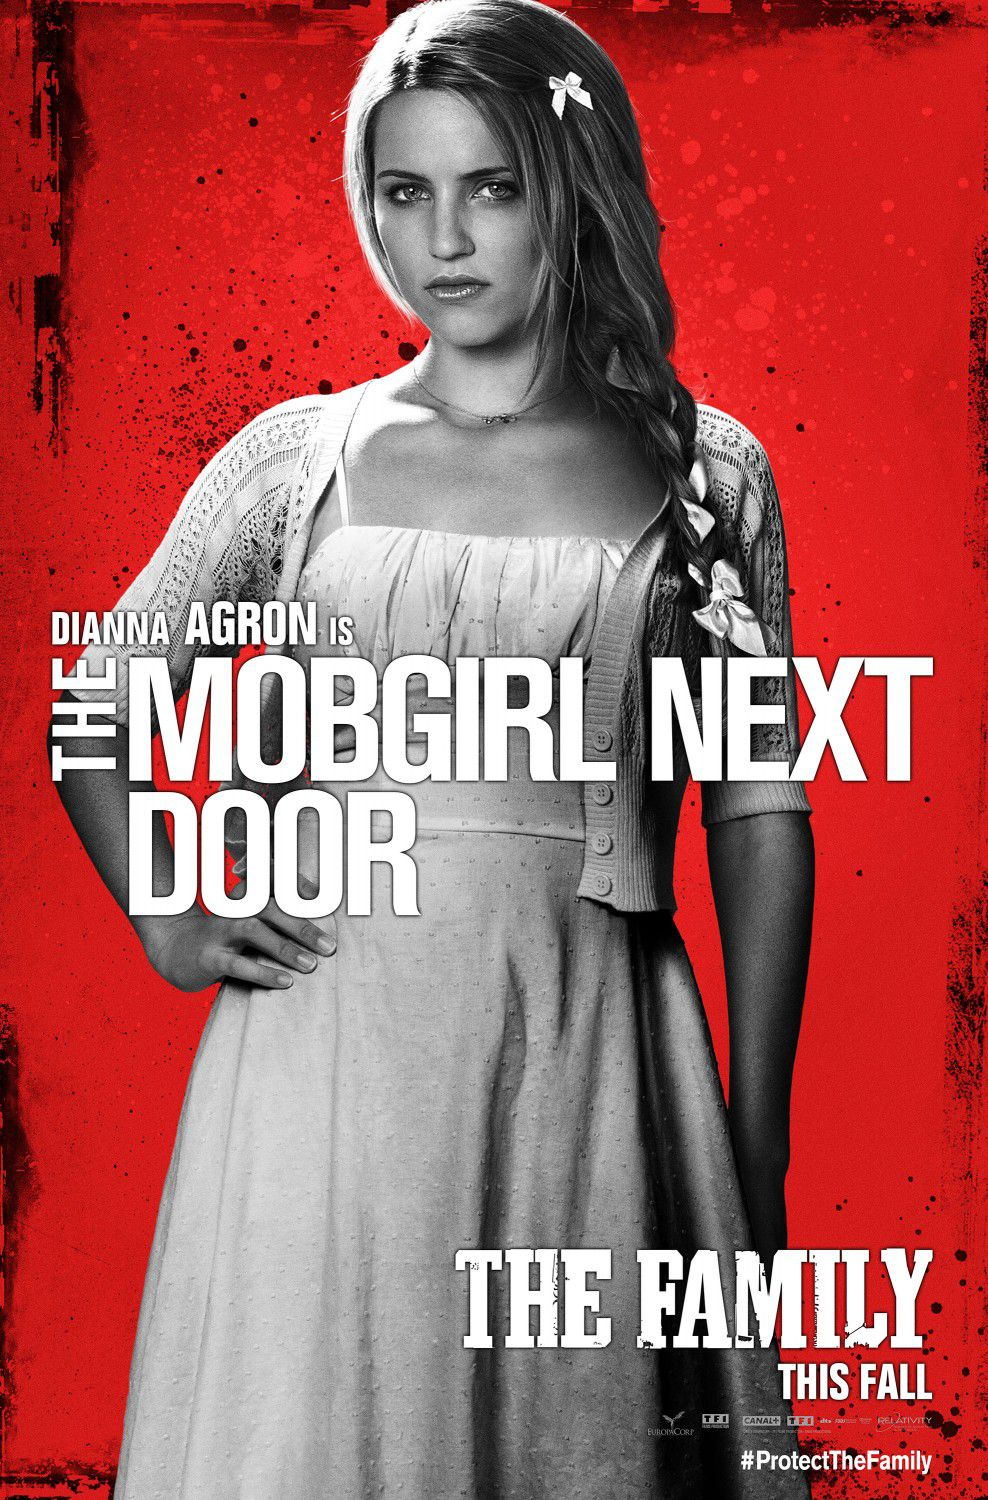 Cose nostre - Malavita - the Family - Dianna Agron - Mobgirl next door poster